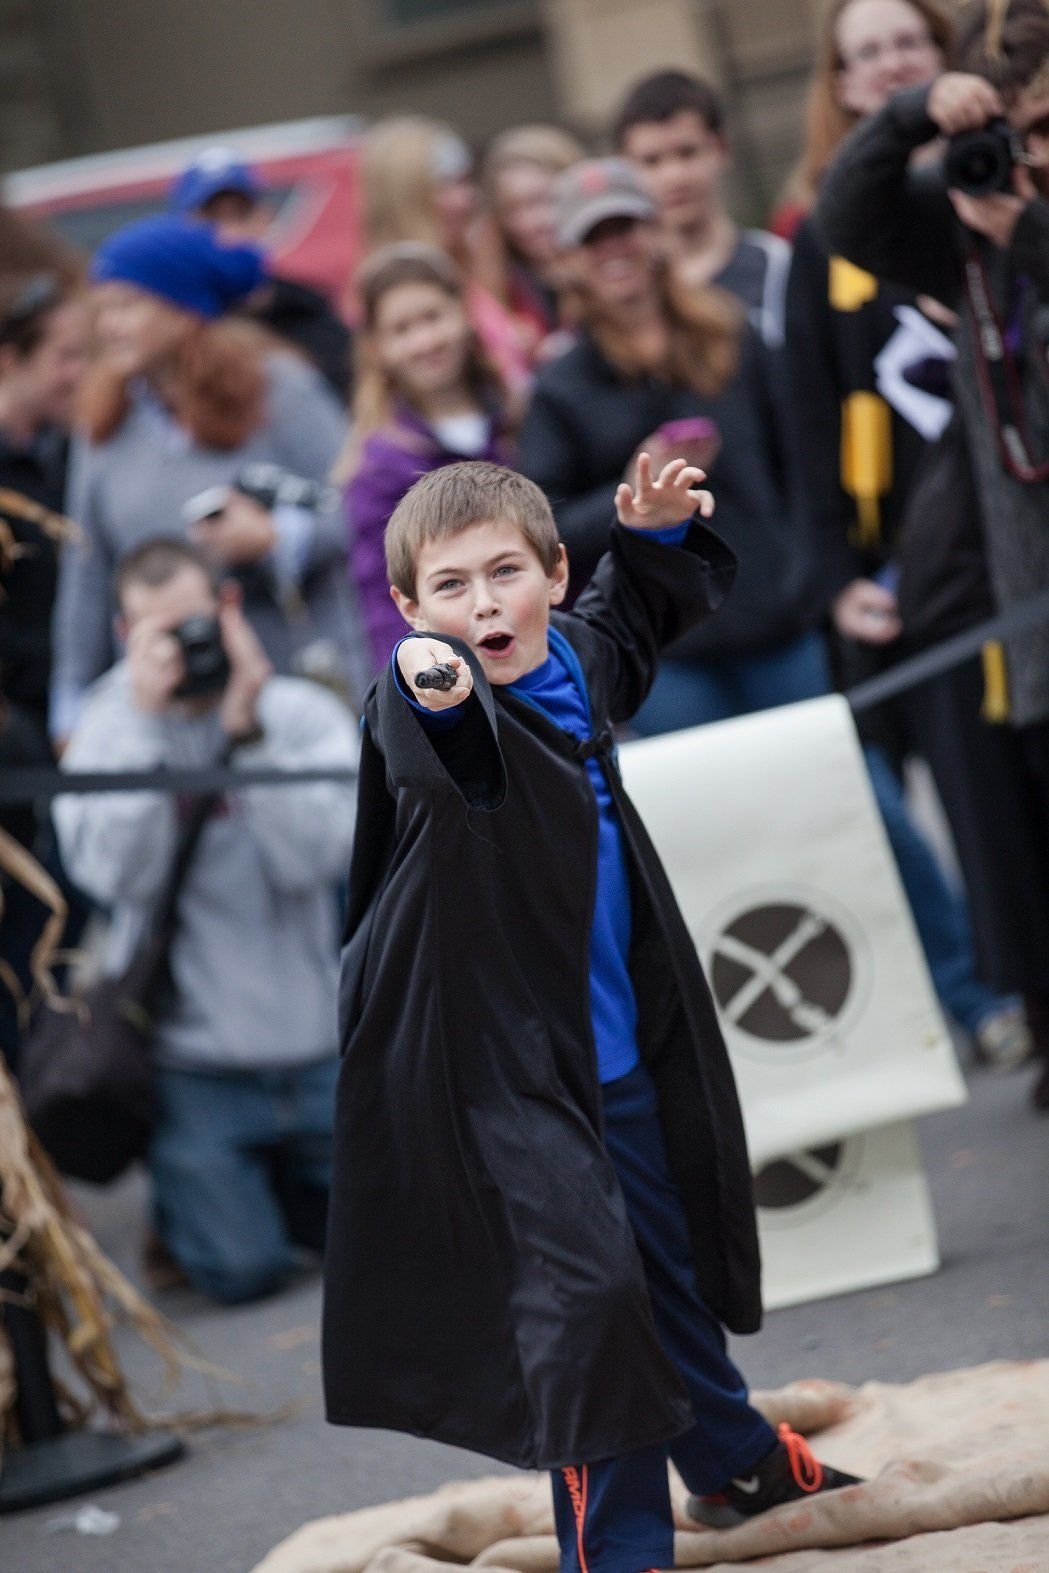 A young wizard displays his wand during last year's Wizarding Weekend in Ithaca, New York.